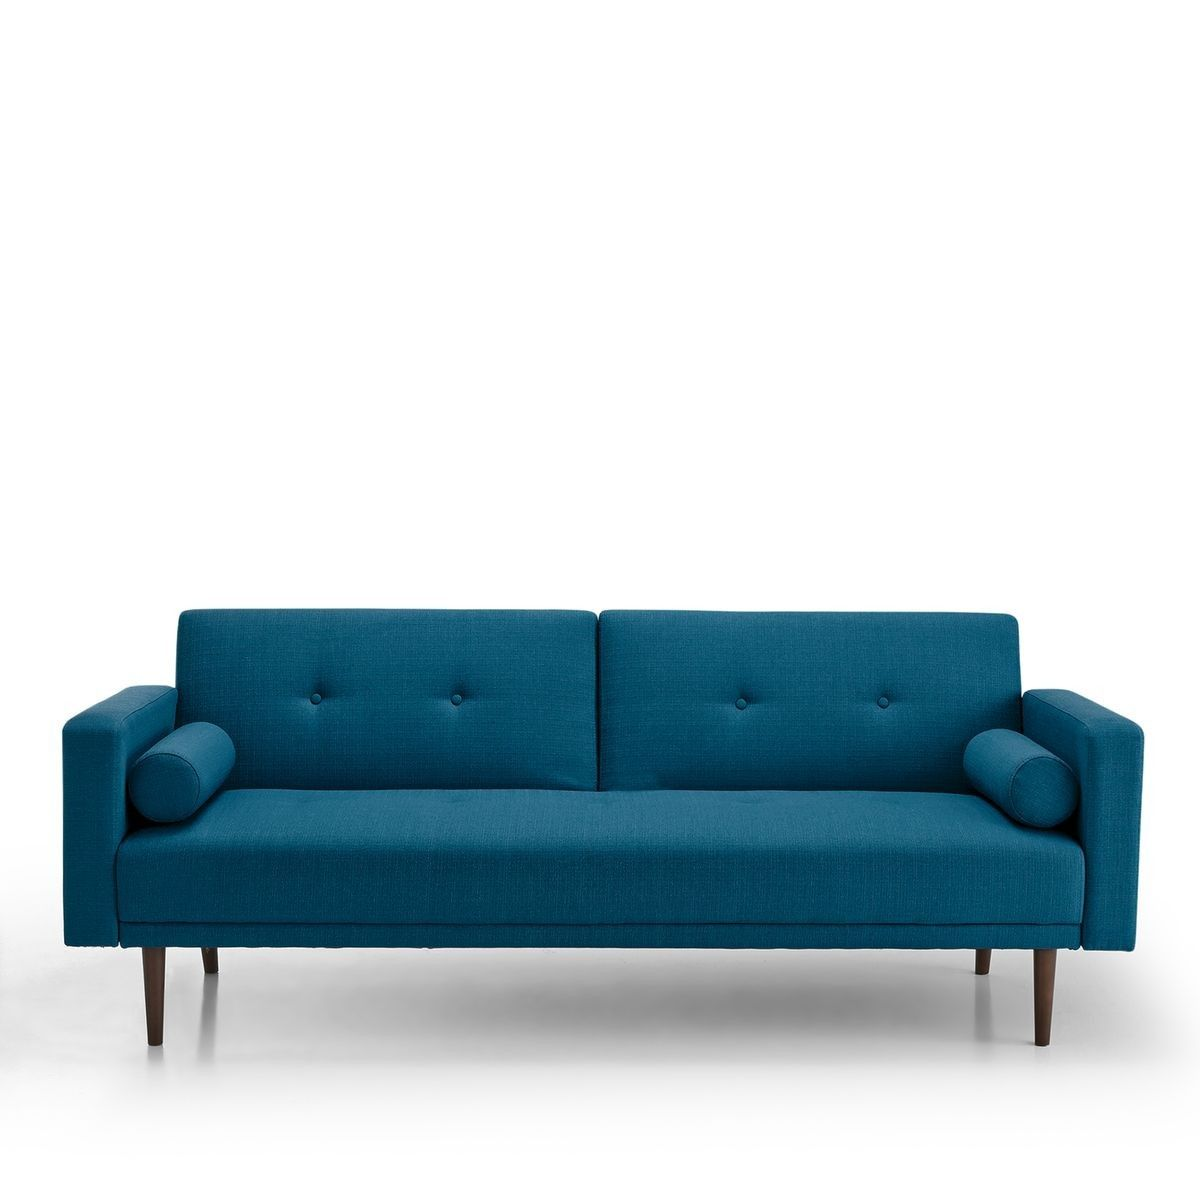 Canape Convertible 3 Places Tuske Taille 3 Places In 2020 3 Seater Sofa Nordic Sofa Sofa